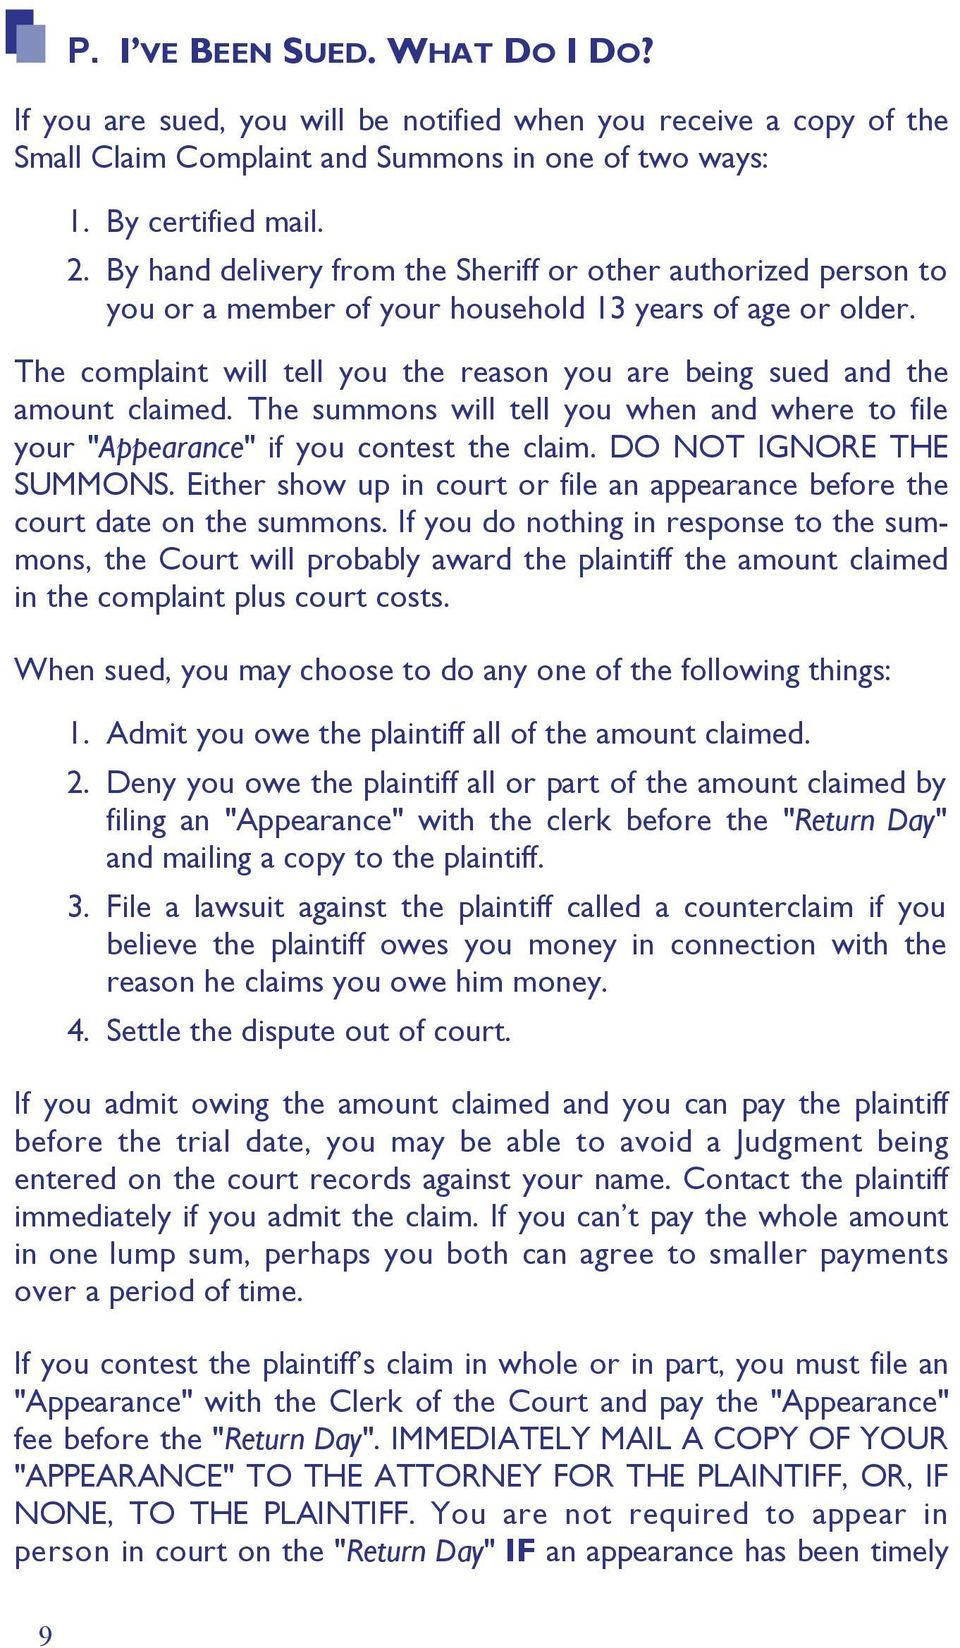 "The complaint will tell you the reason you are being sued and the amount claimed. The summons will tell you when and where to file your ""Appearance"" if you contest the claim."